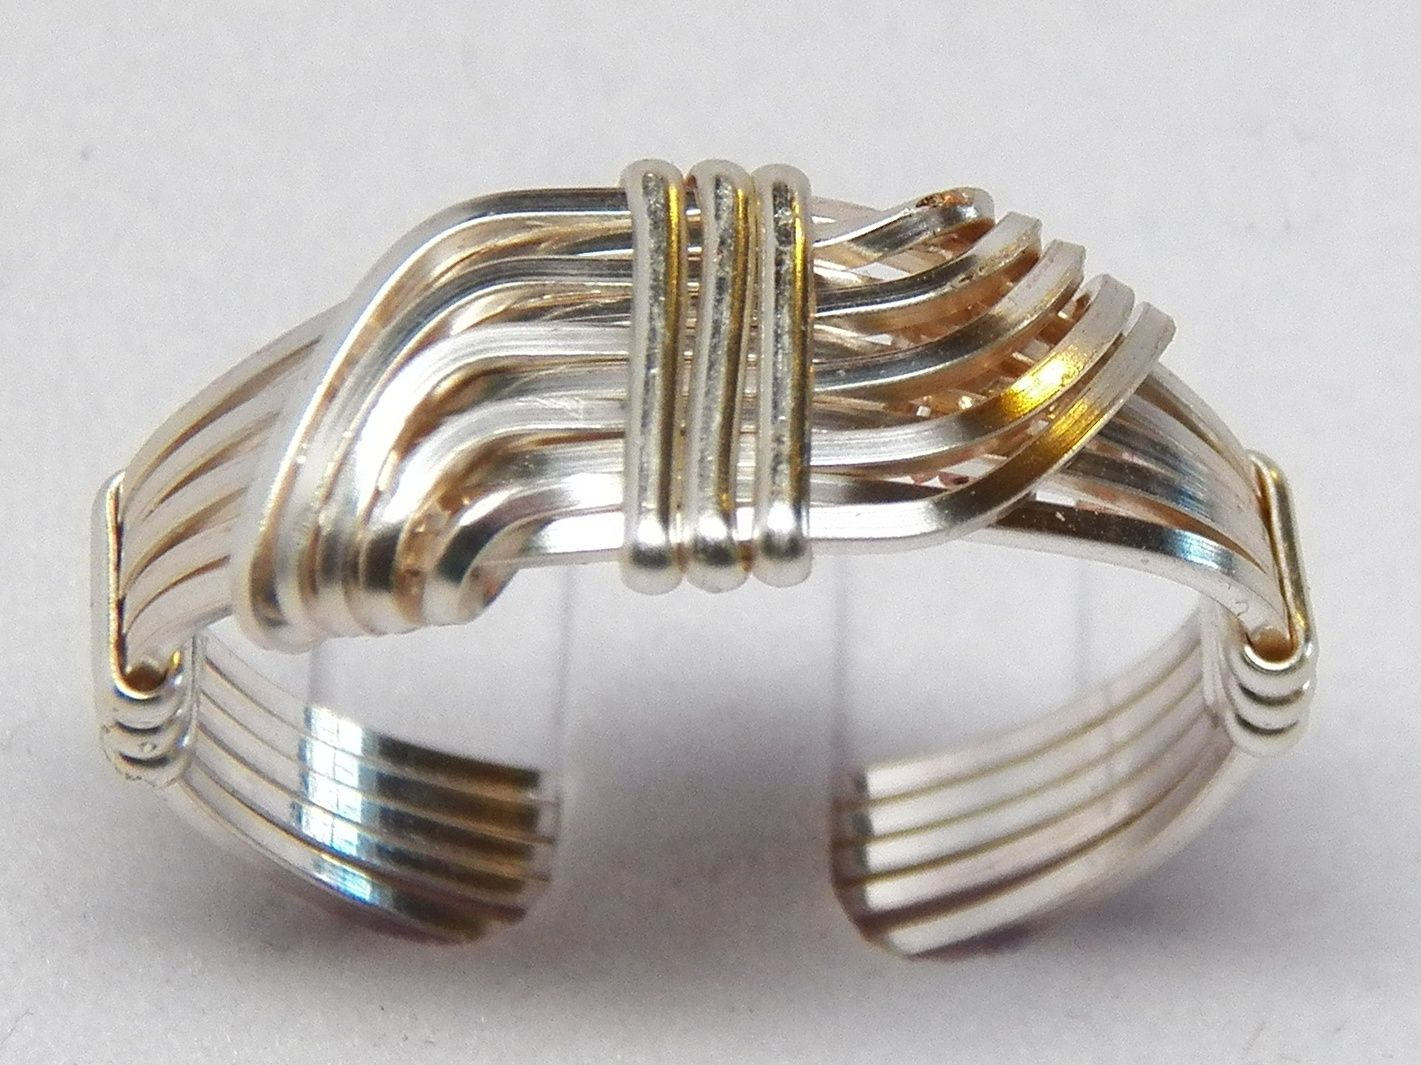 Hug Wire Wrapped Ring Tutorial | String | Pinterest | Ring tutorial ...